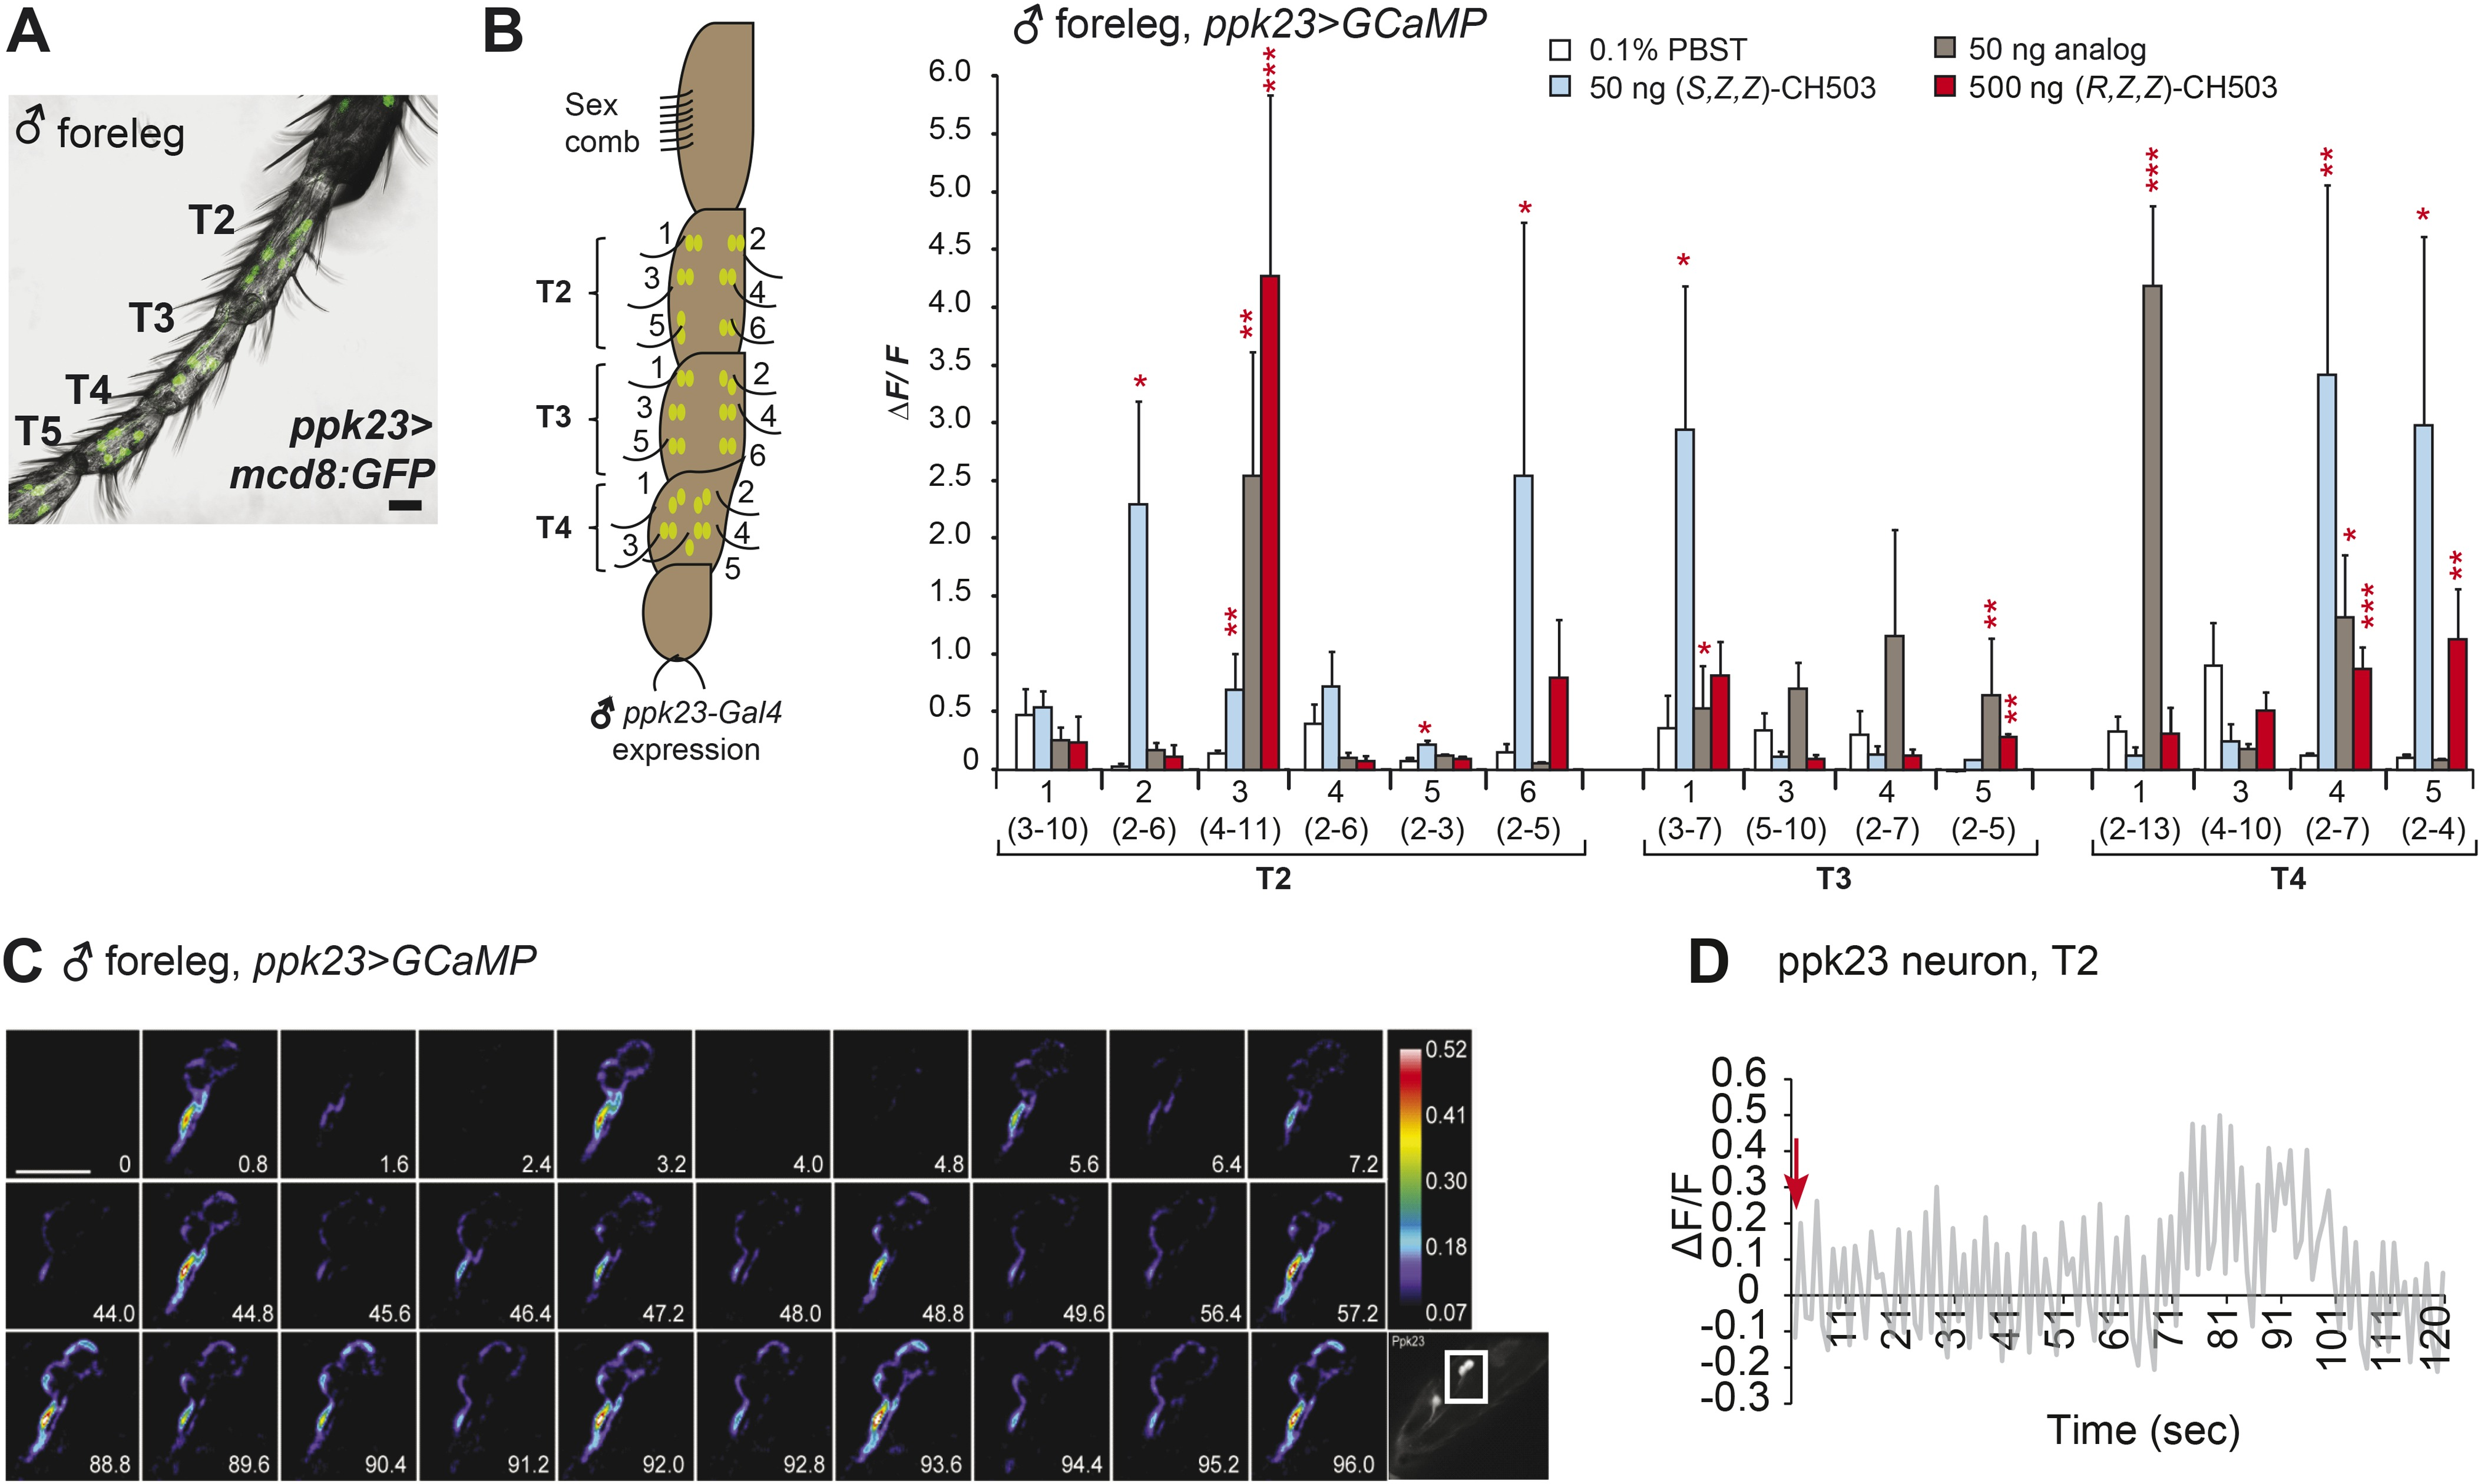 The neuropeptide tachykinin is essential for pheromone detection ...